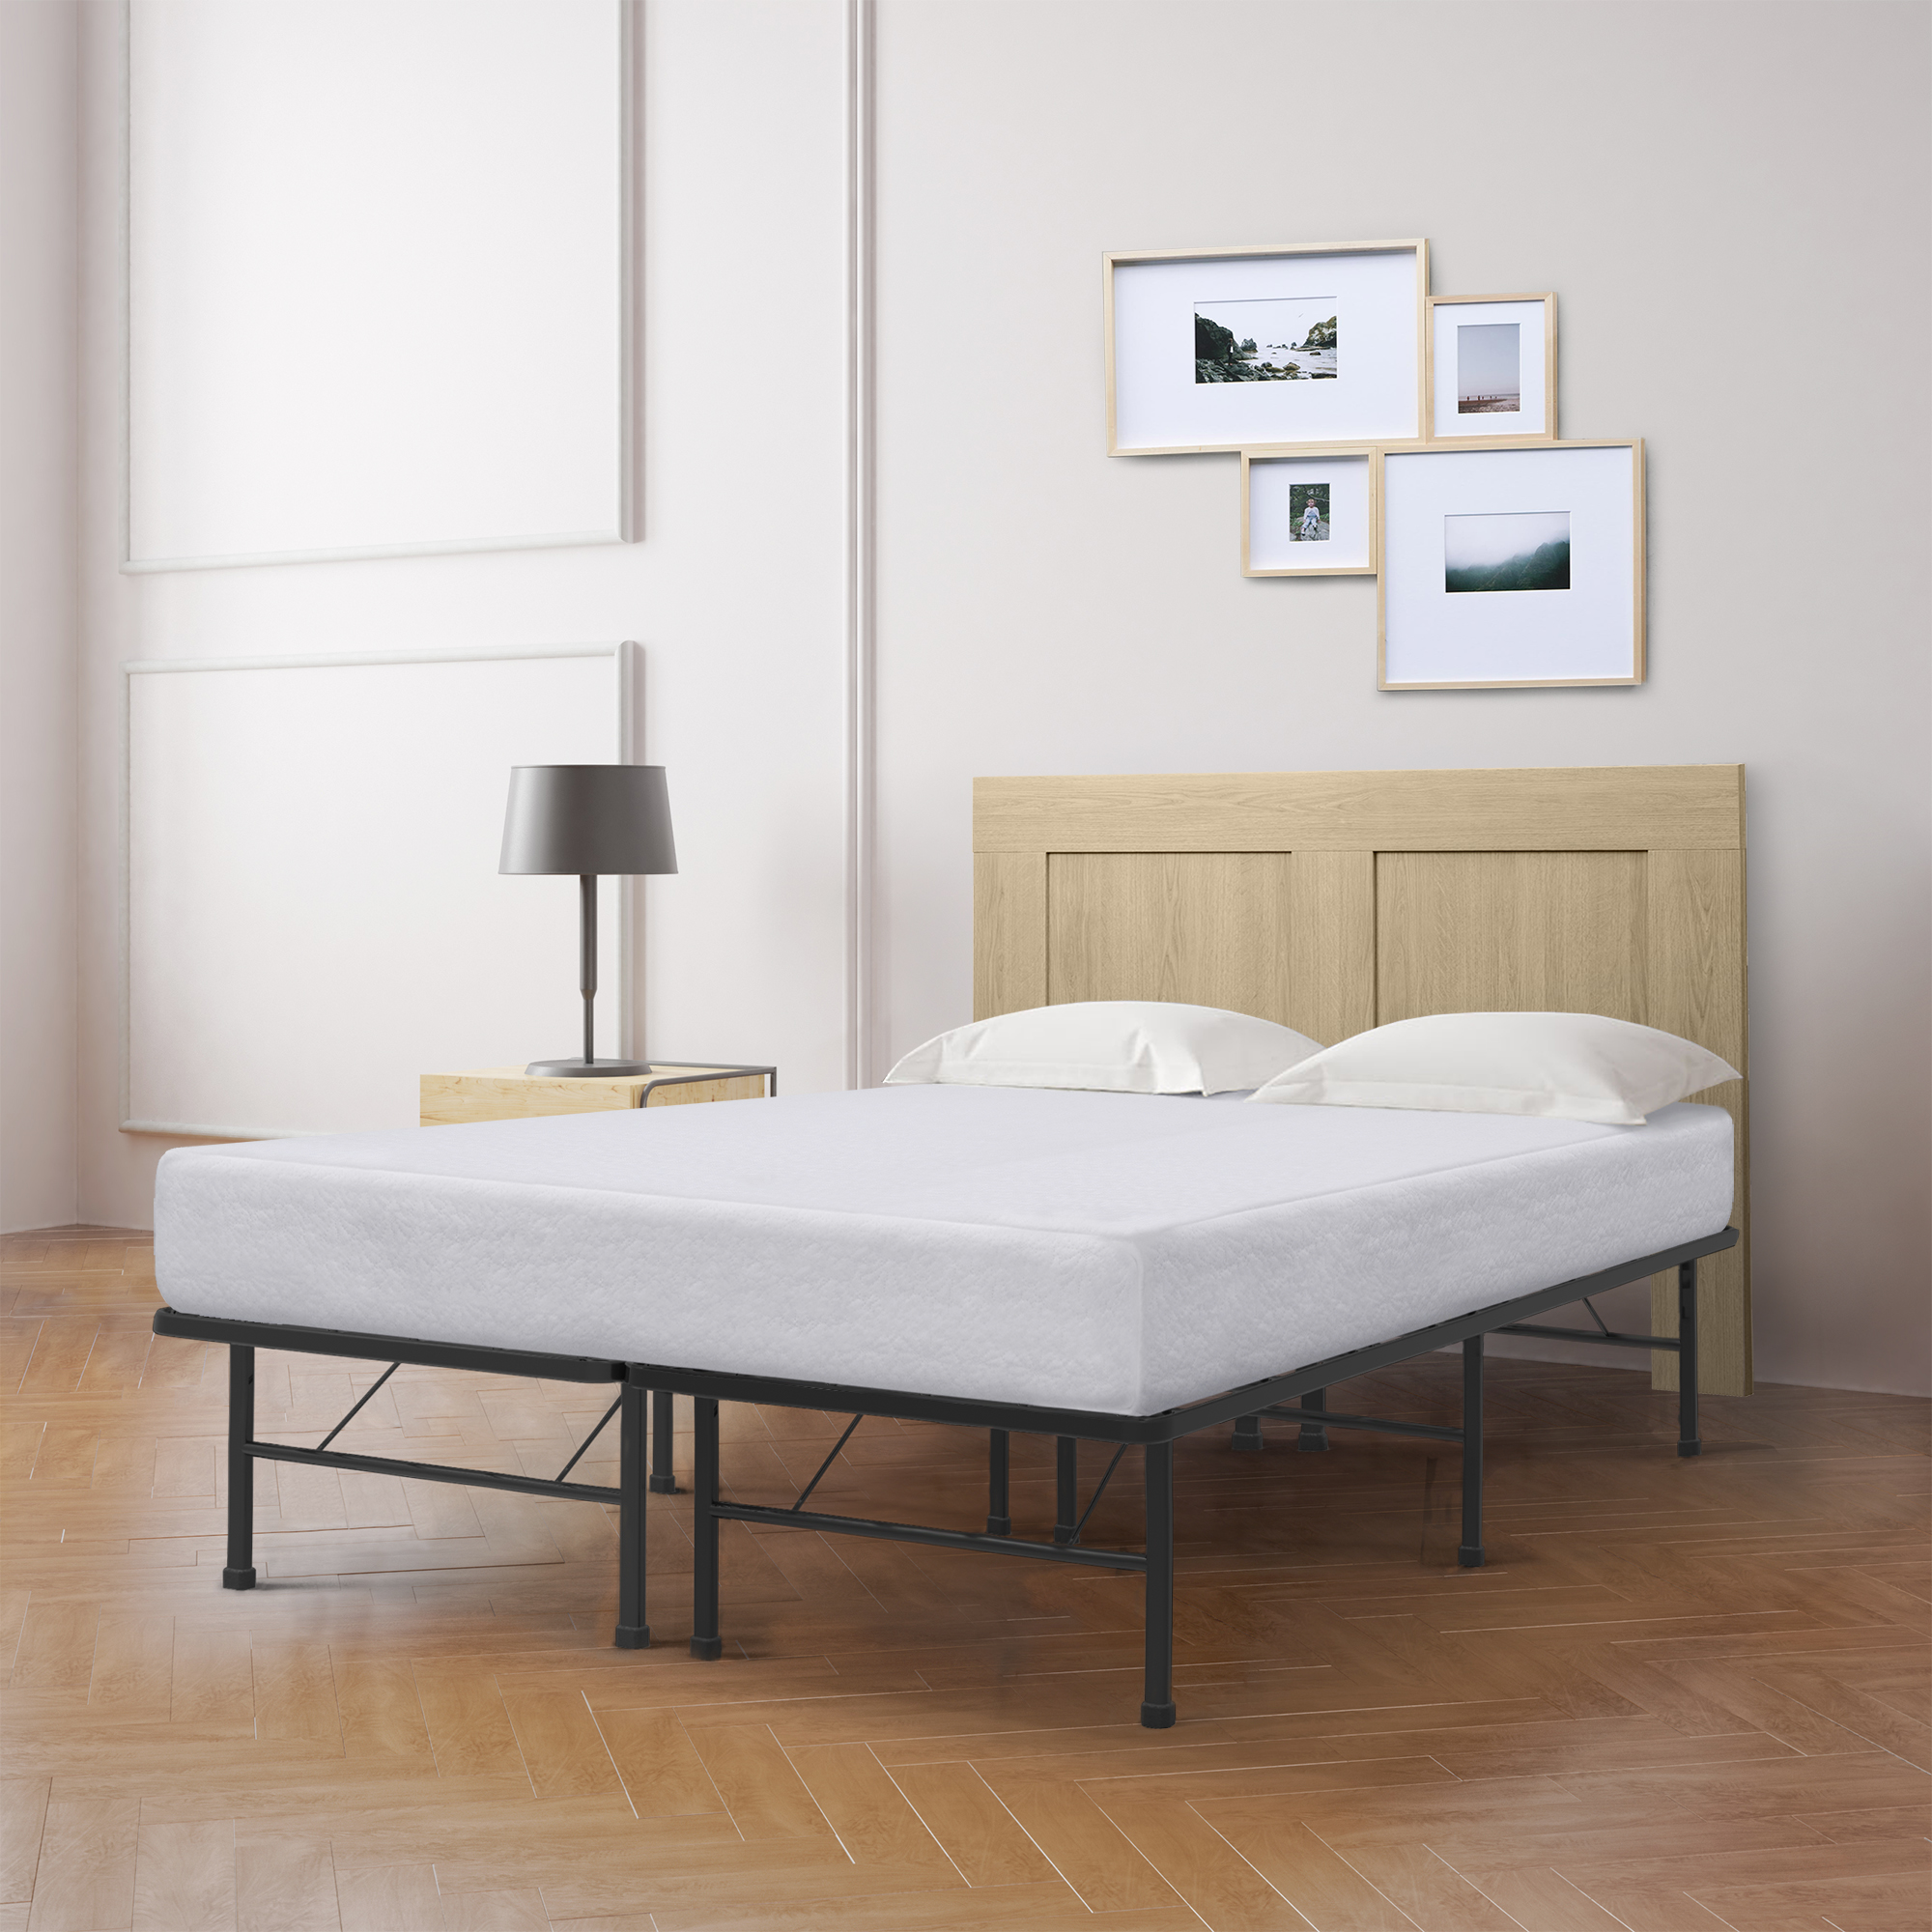 Best Price Mattress 8 Inch Memory Foam Mattress and Innovated Platform Metal Bed Frame Set